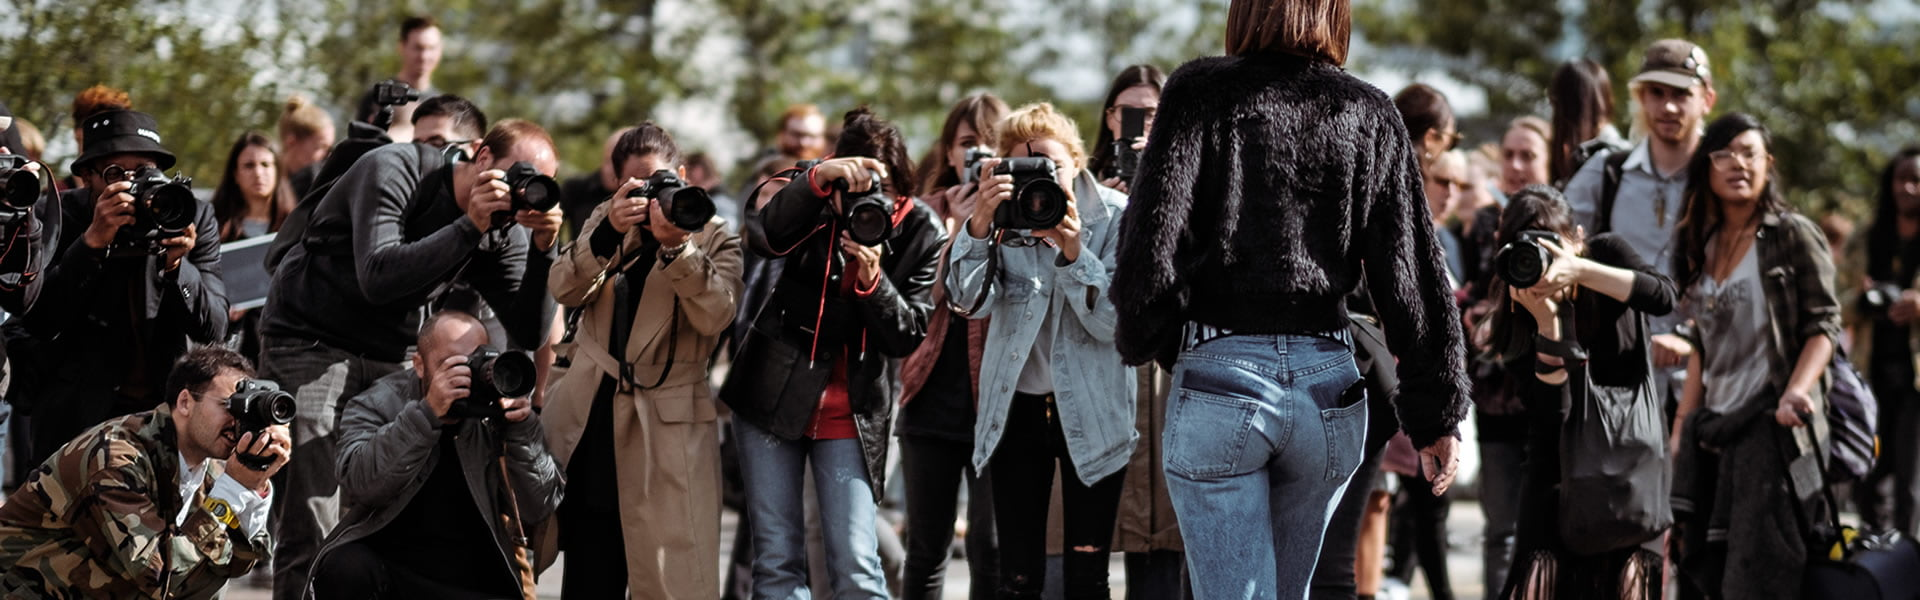 Paparazzi photographing model outside